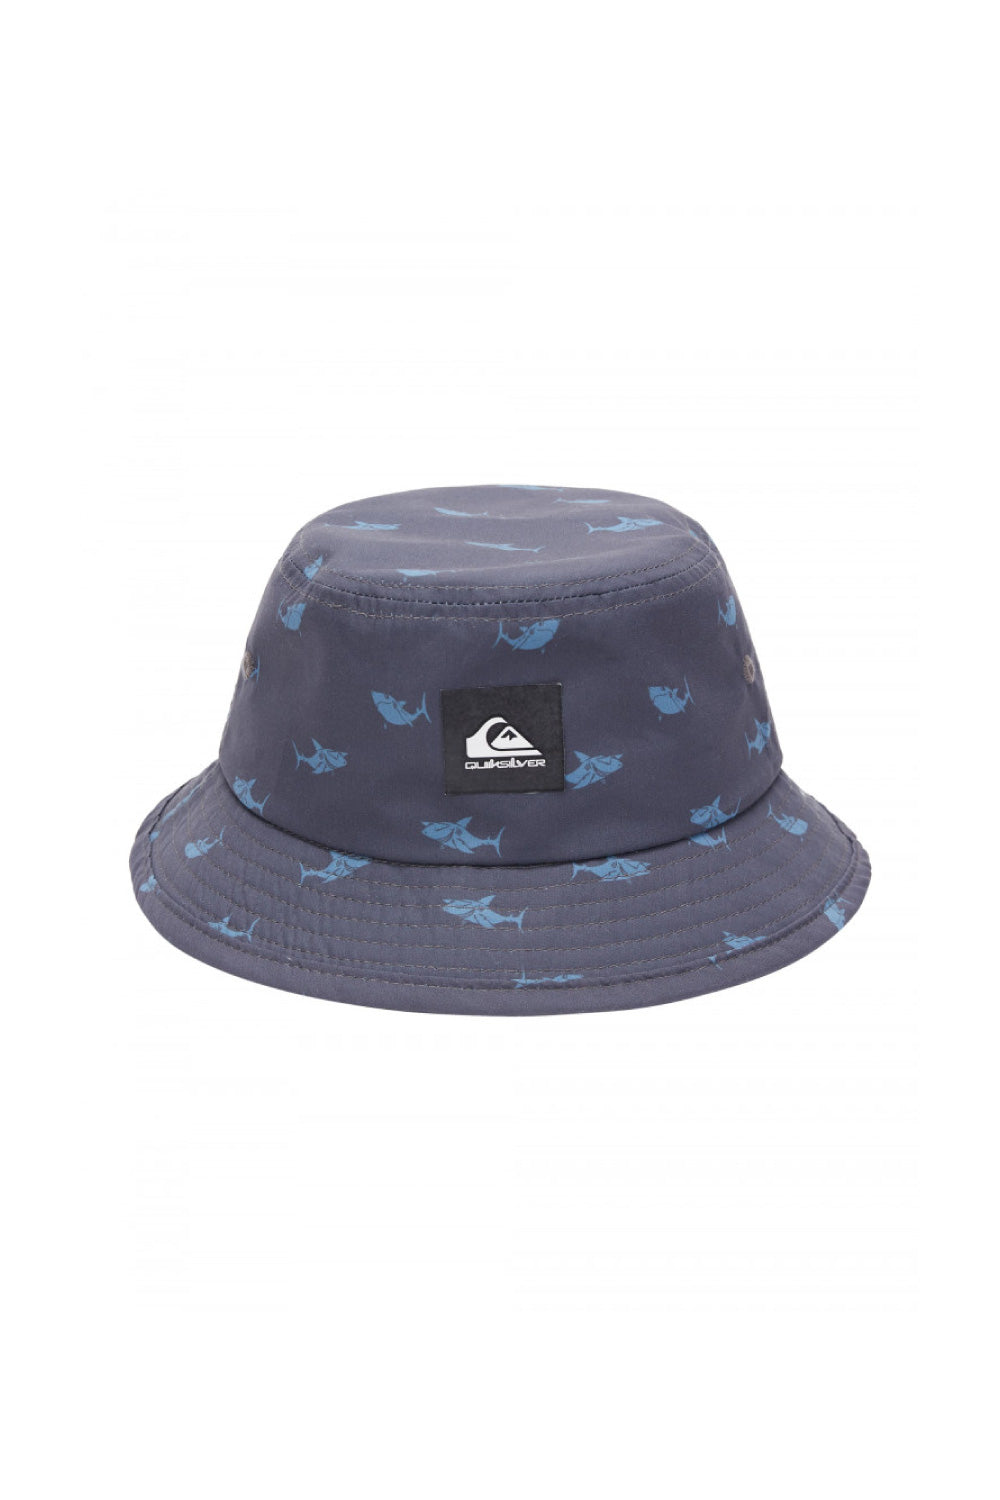 Quiksilver Flounders Boy Reversible Bucket Hat (2-7 Years)